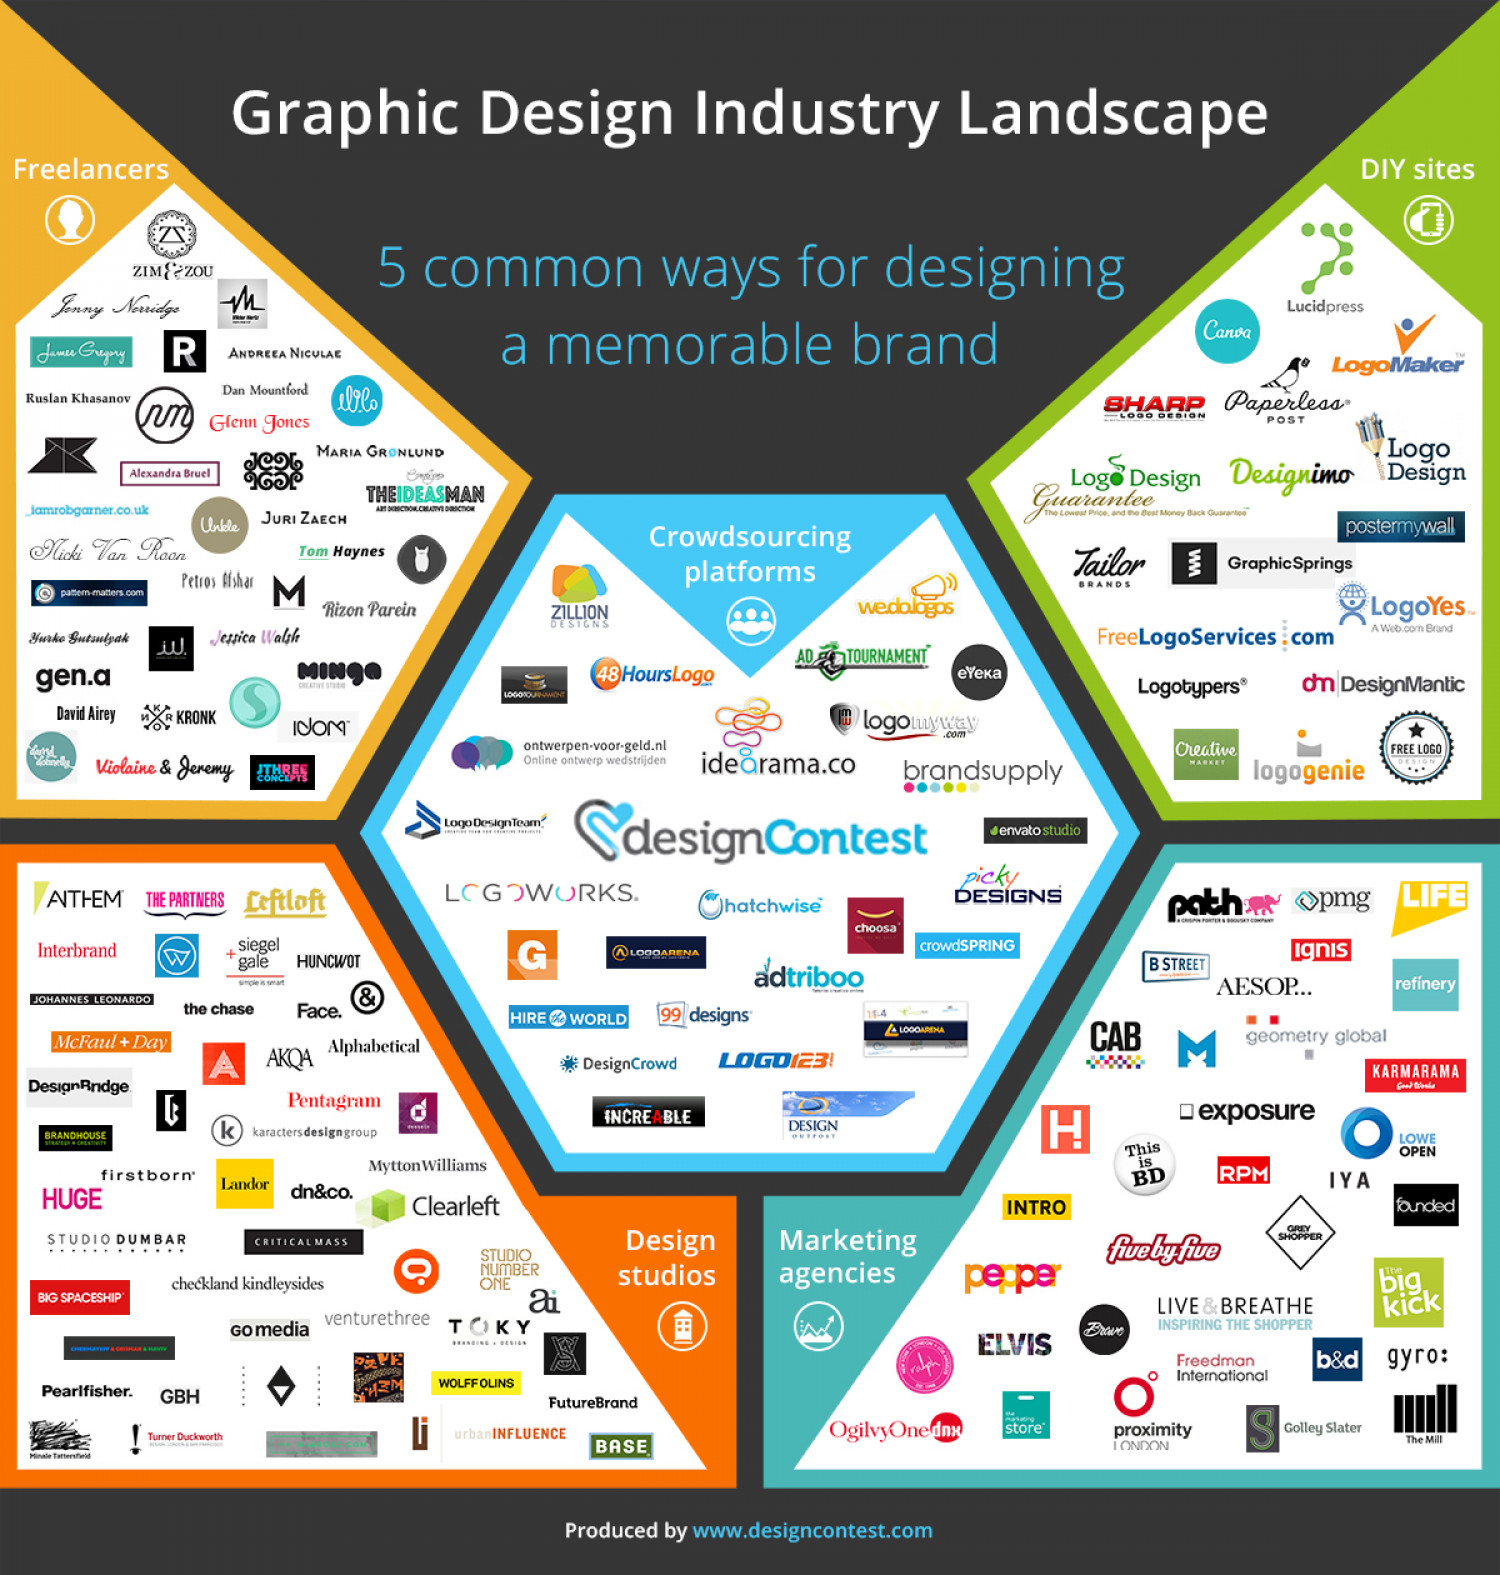 Graphic Design Industry Landscape Infographic